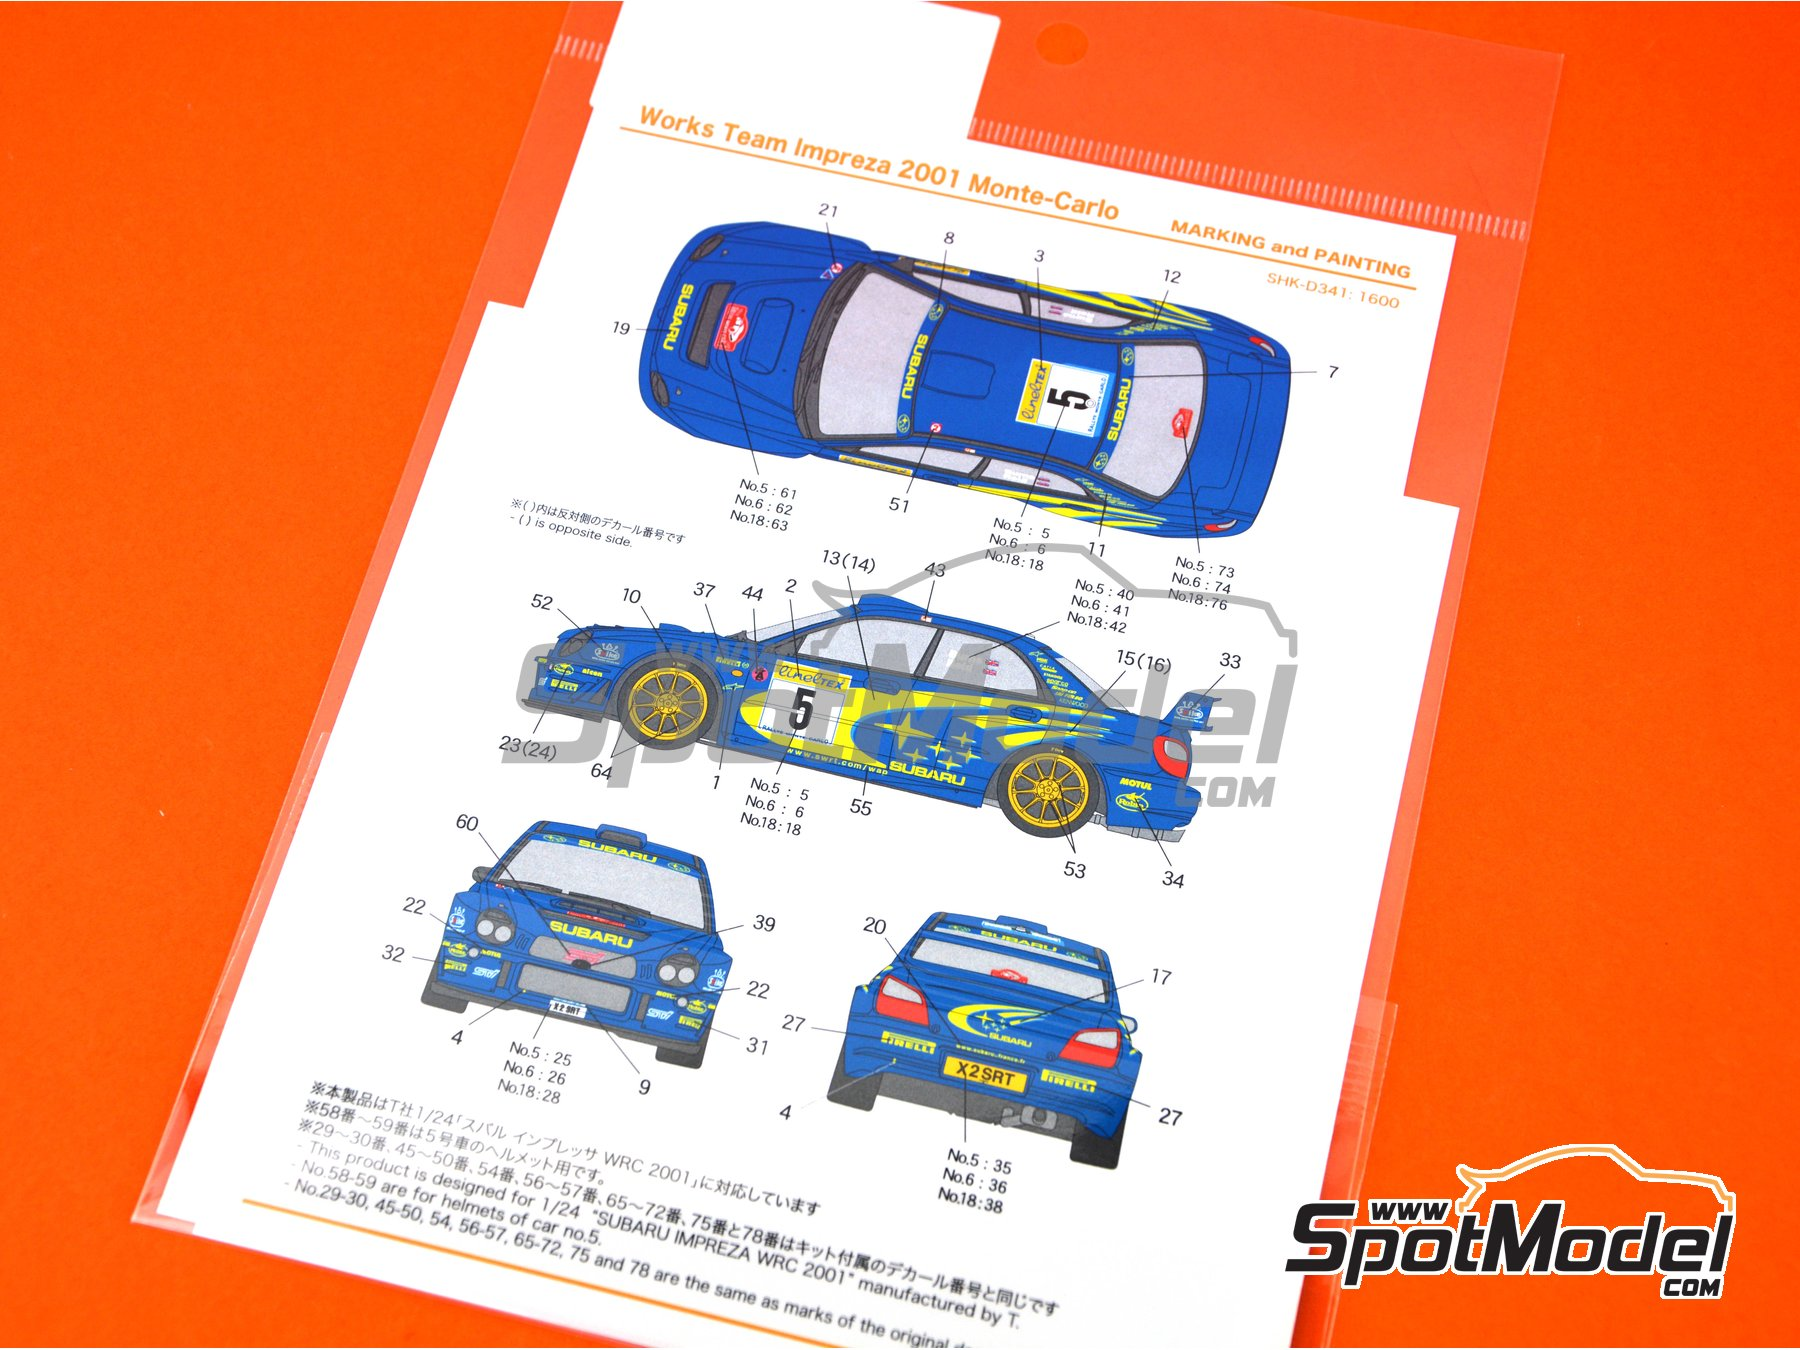 Image 3: Subaru Impreza WRC Works Team Impreza - Montecarlo Rally 2001 | Marking / livery in 1/24 scale manufactured by Shunko Models (ref. SHK-D341)